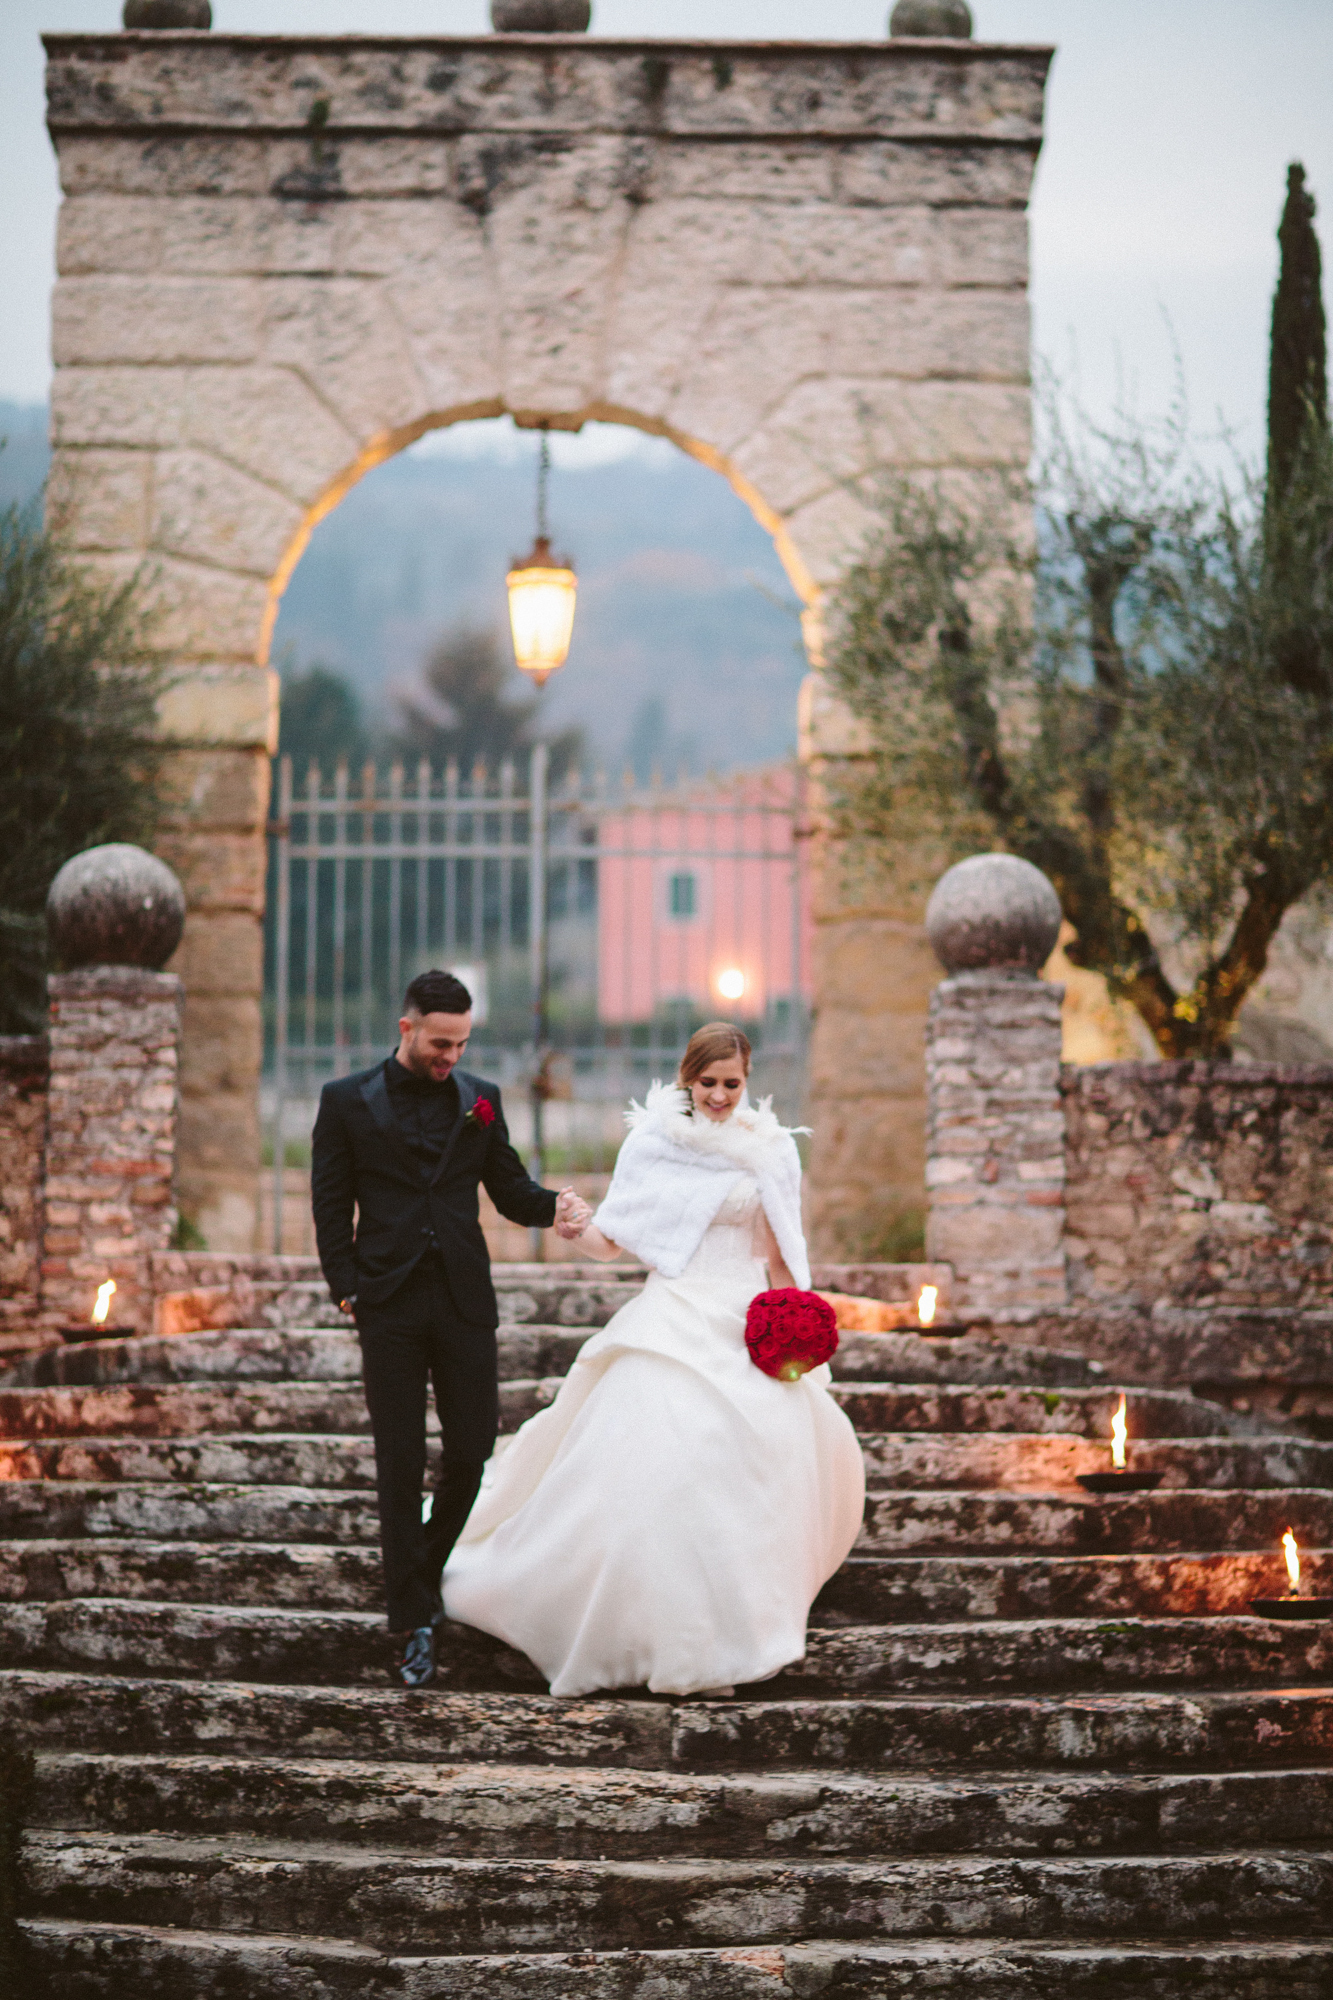 italy-destination-wedding-photographer-34.jpg